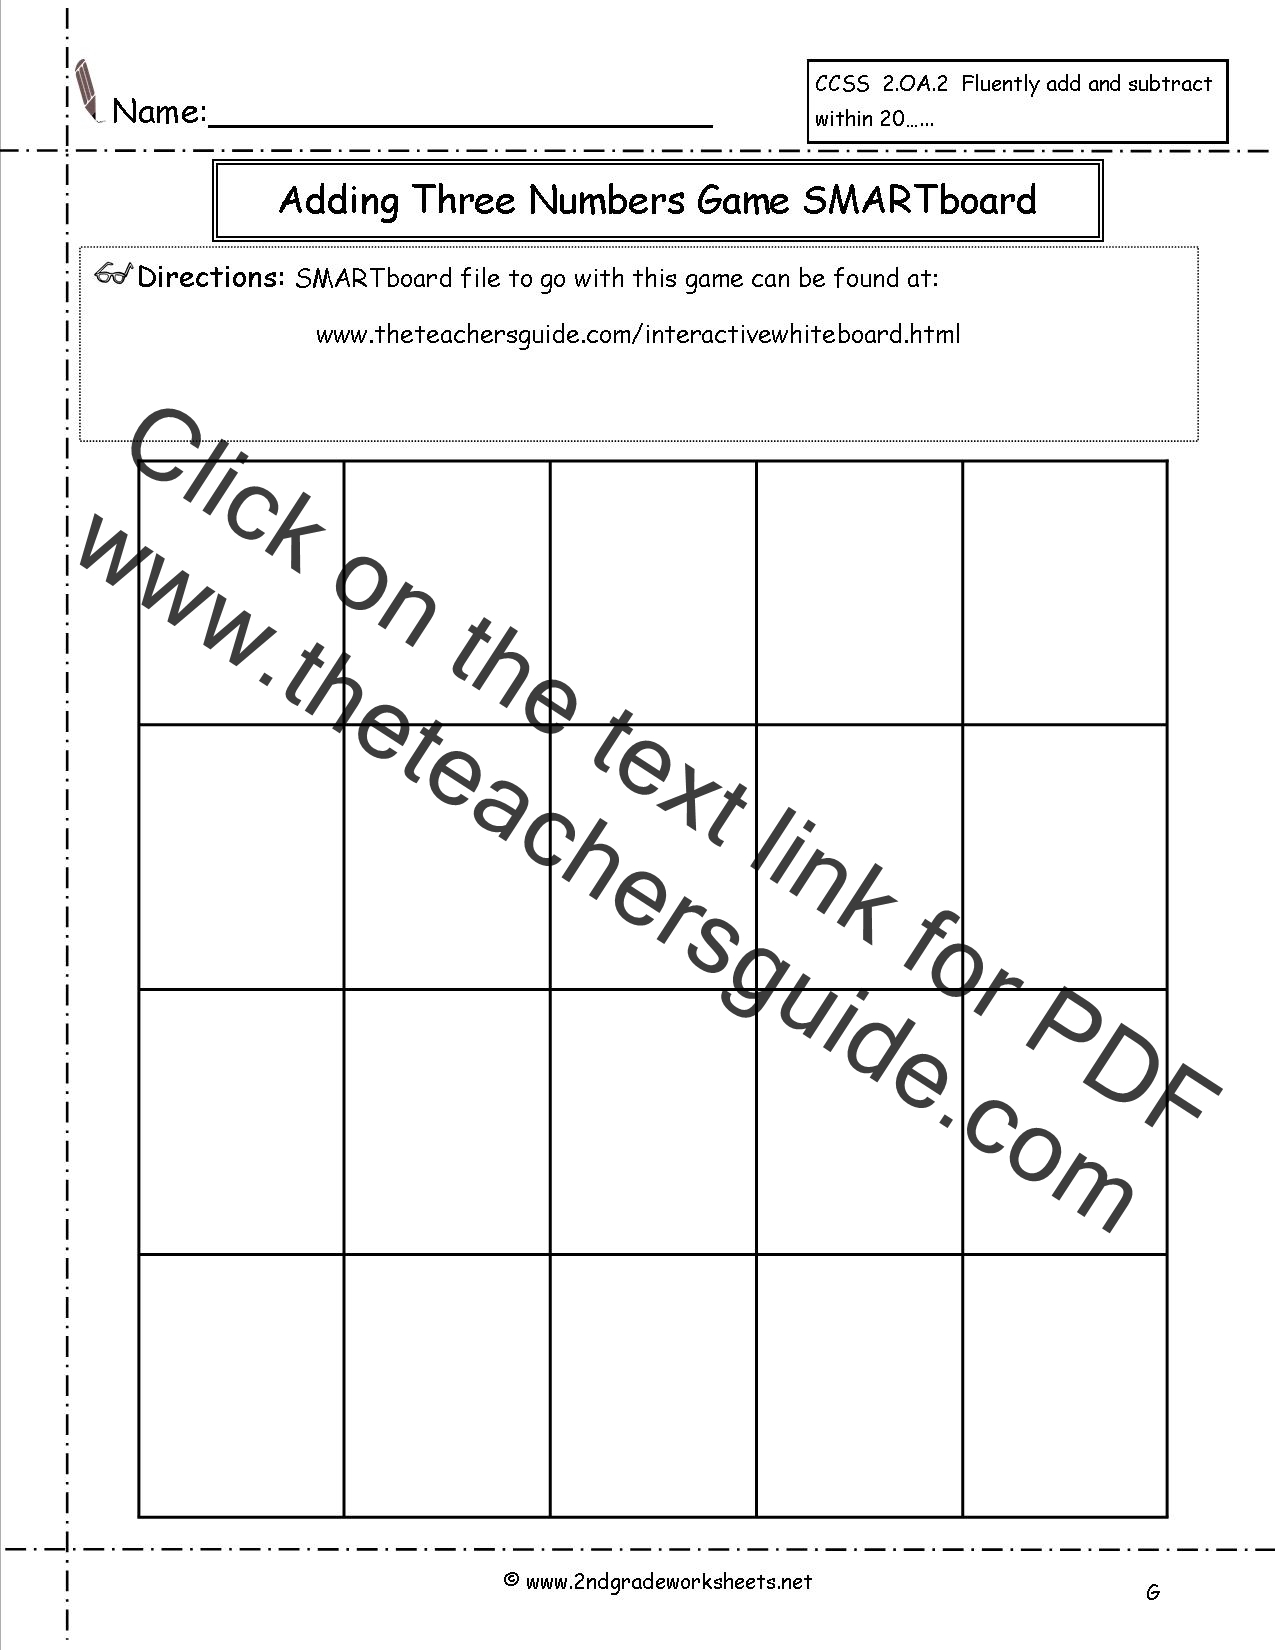 worksheet Adding Three Numbers adding three or more single digit numbers worksheets digits additon smartboard game